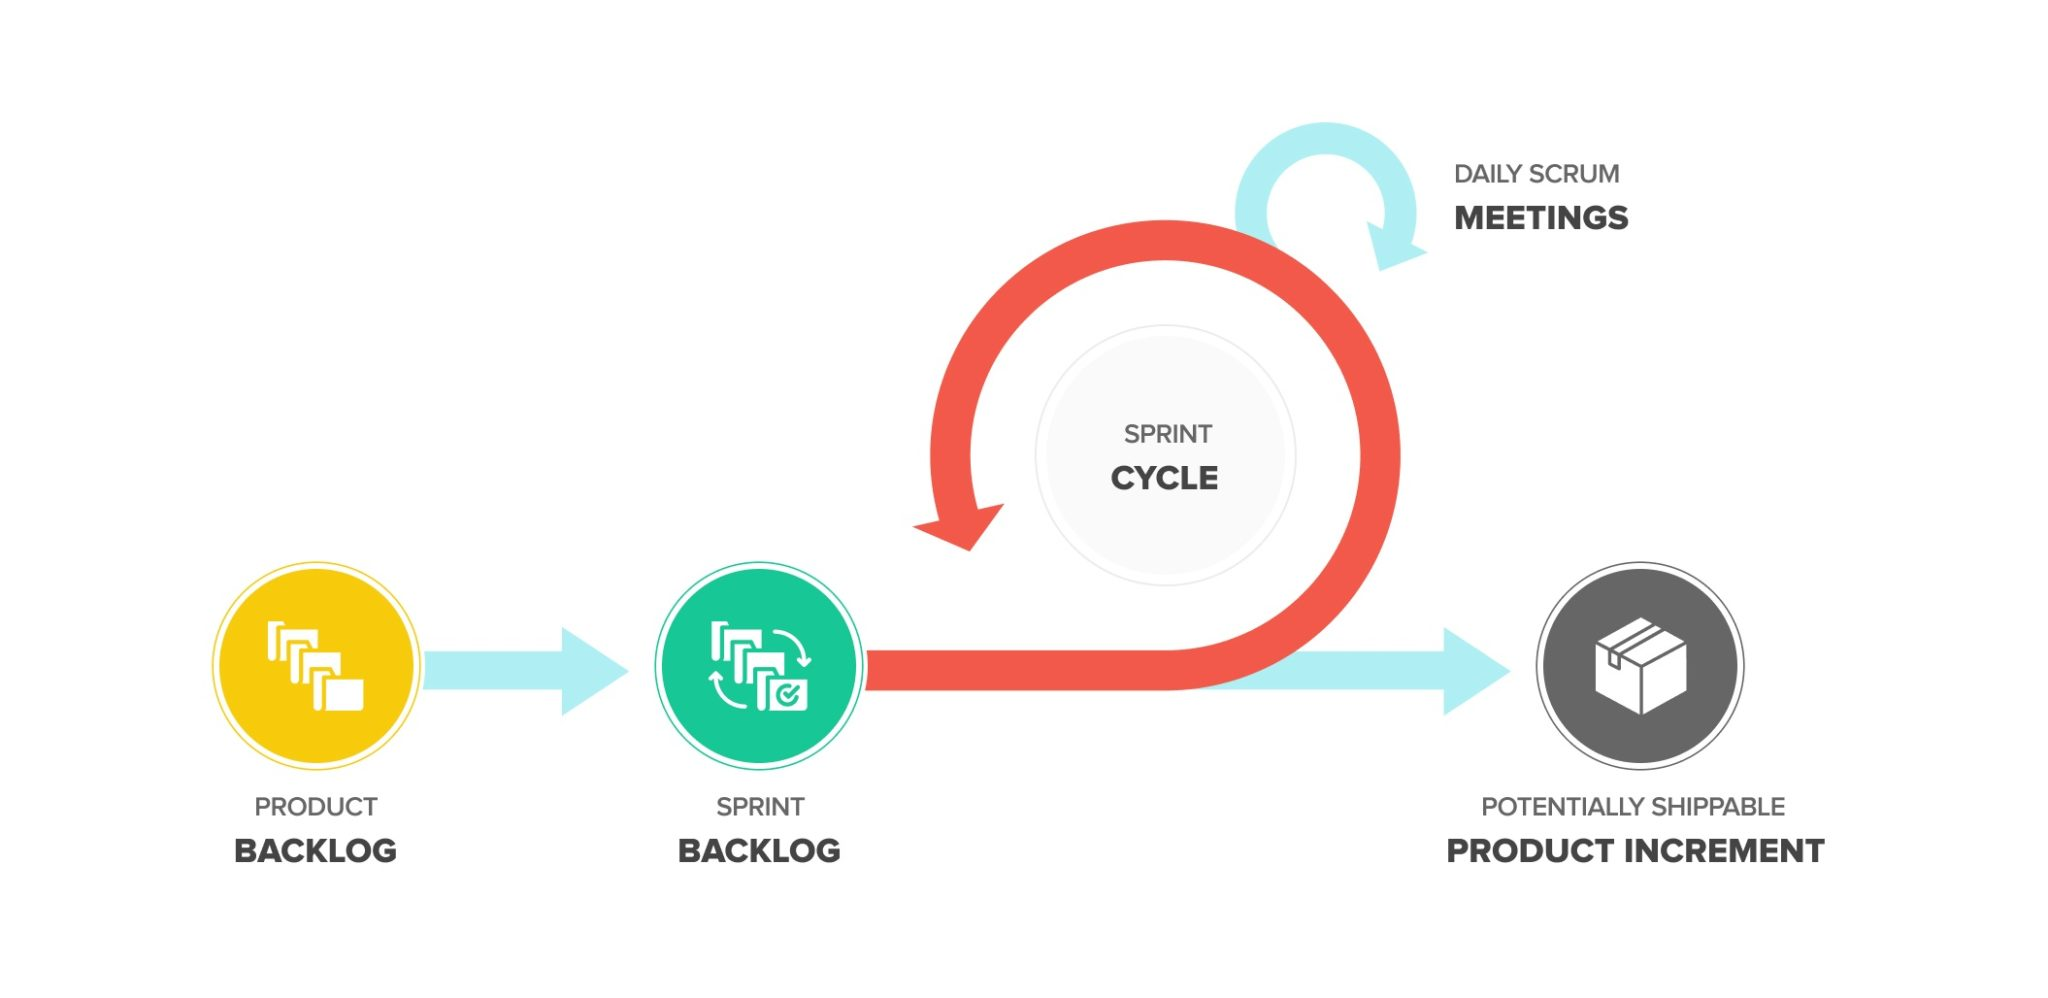 Scrum Artifacts - Sprint Cycles